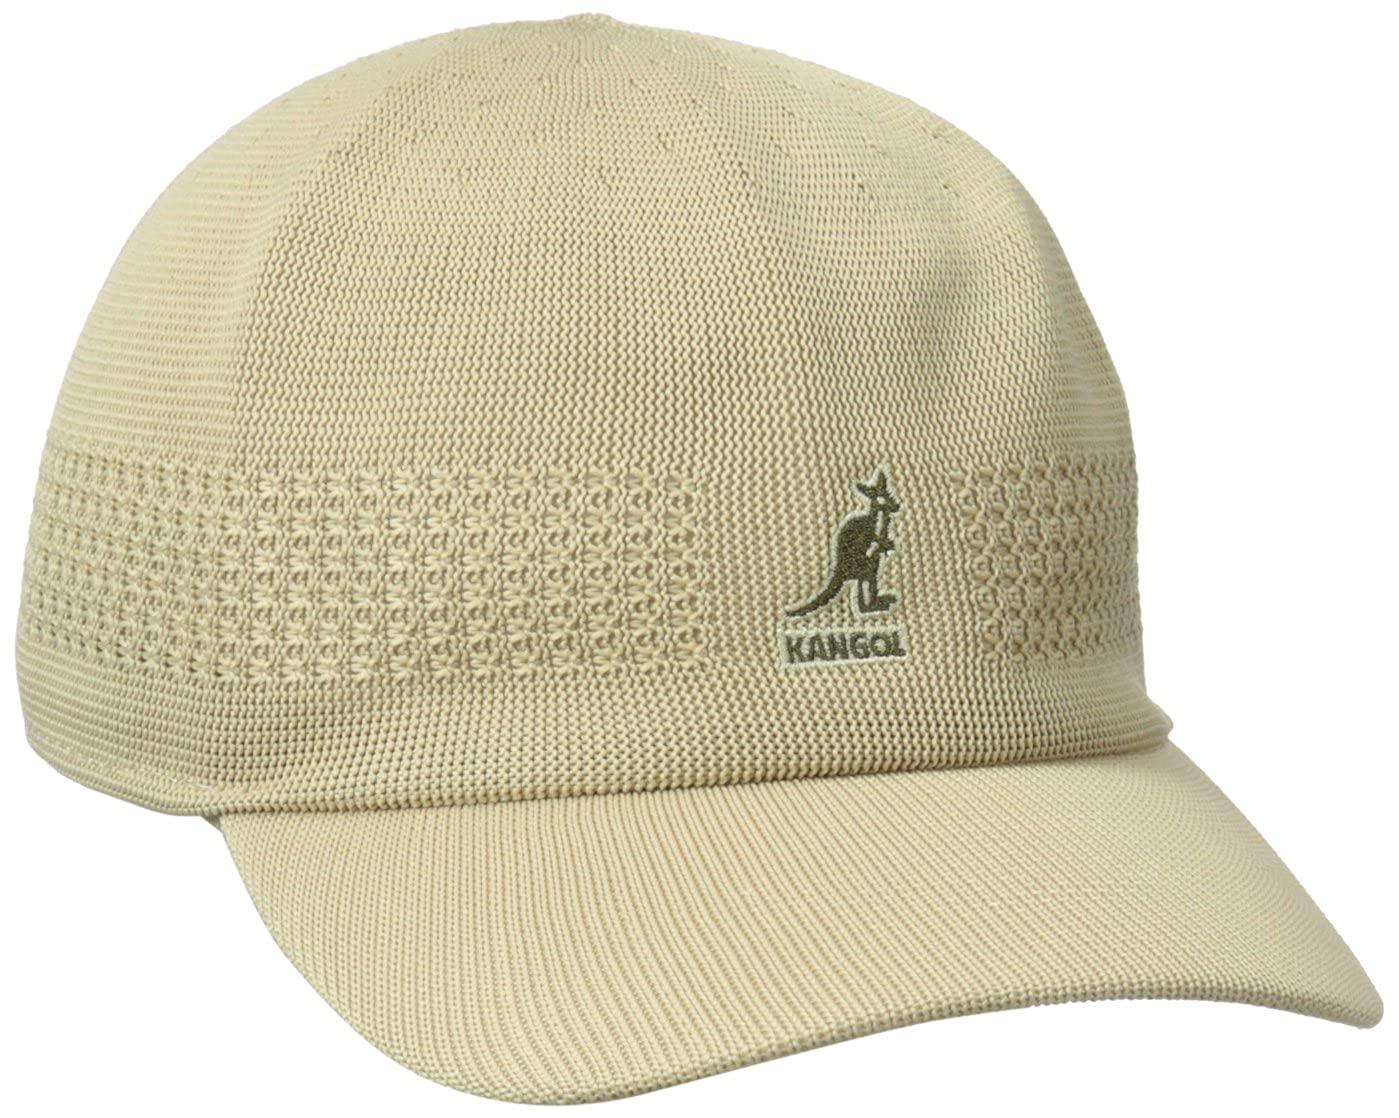 92c941b740e Kangol Men s Tropic Ventair Space Cap at Amazon Men s Clothing store